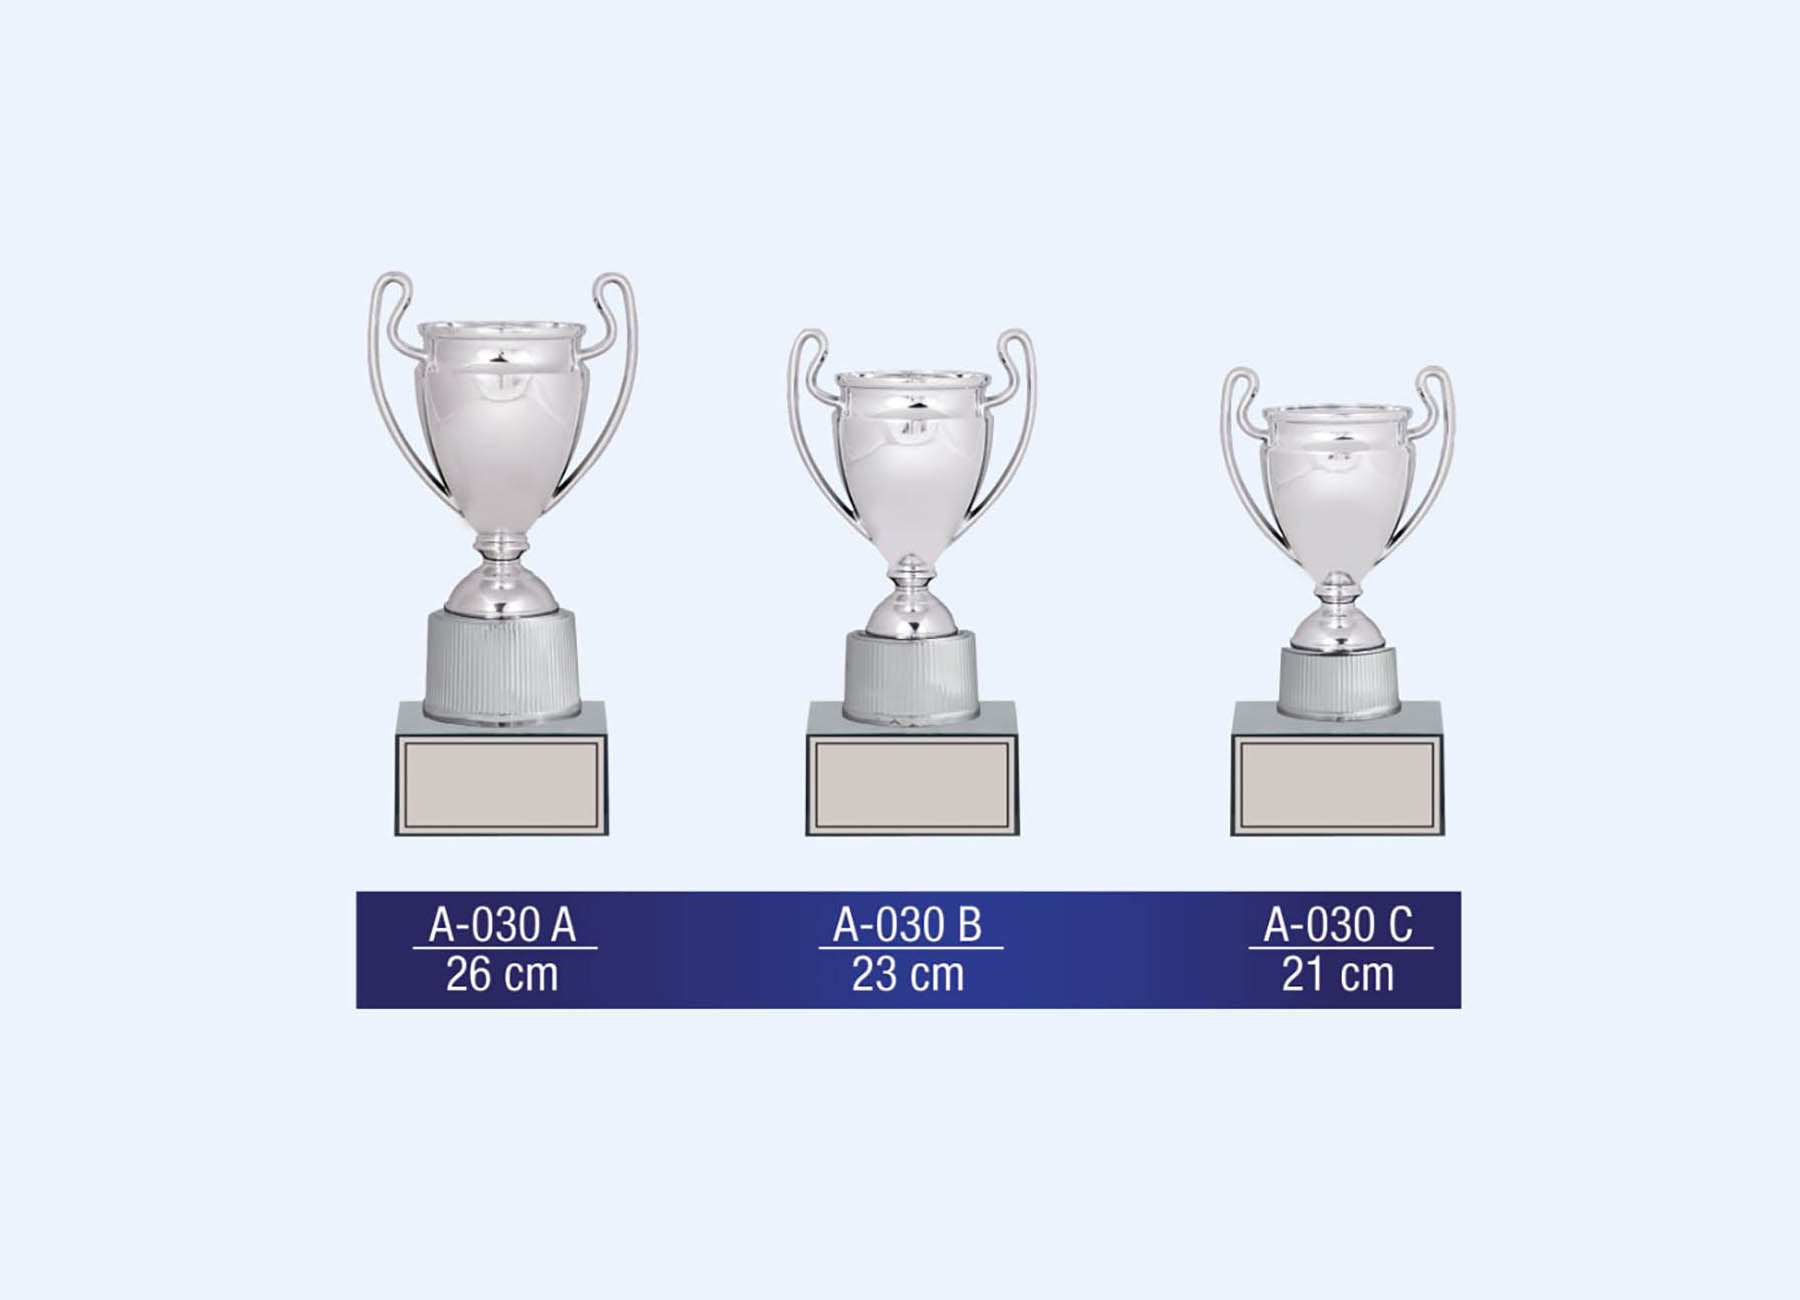 A-030 General Cups